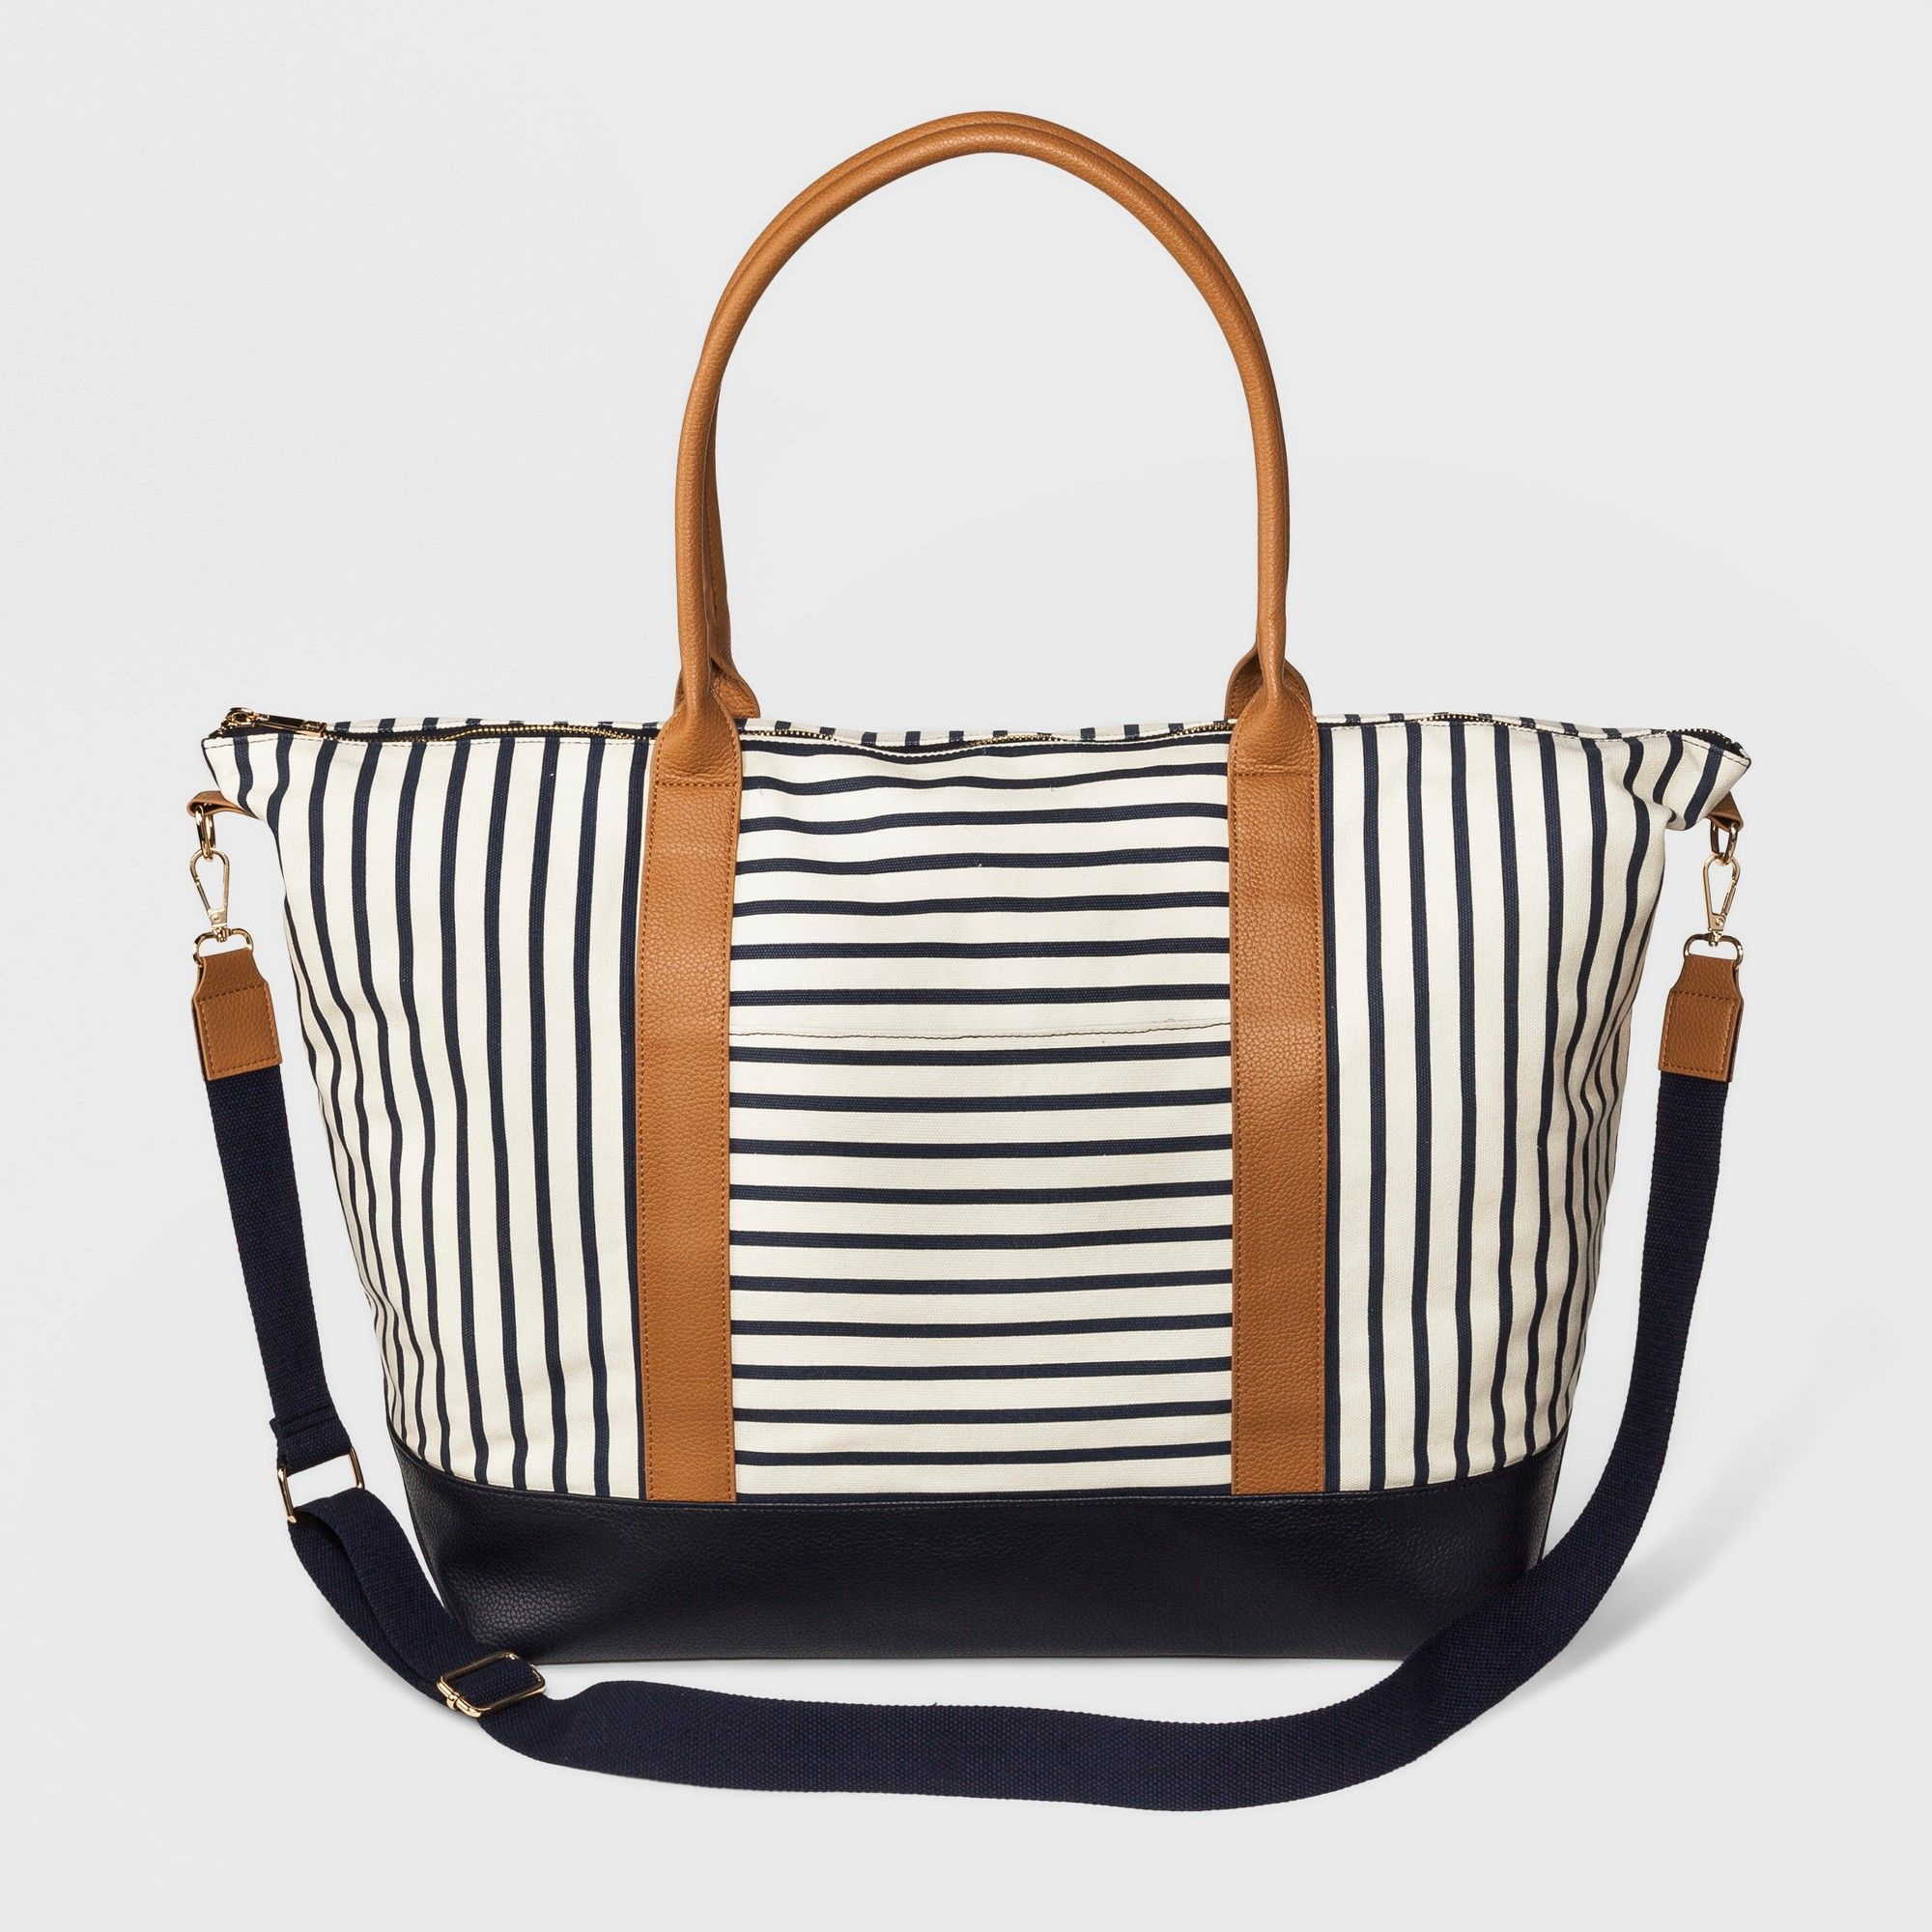 52f02ed3397 Women's Striped Canvas Weekender Bag - A New Day Striped Floral ...